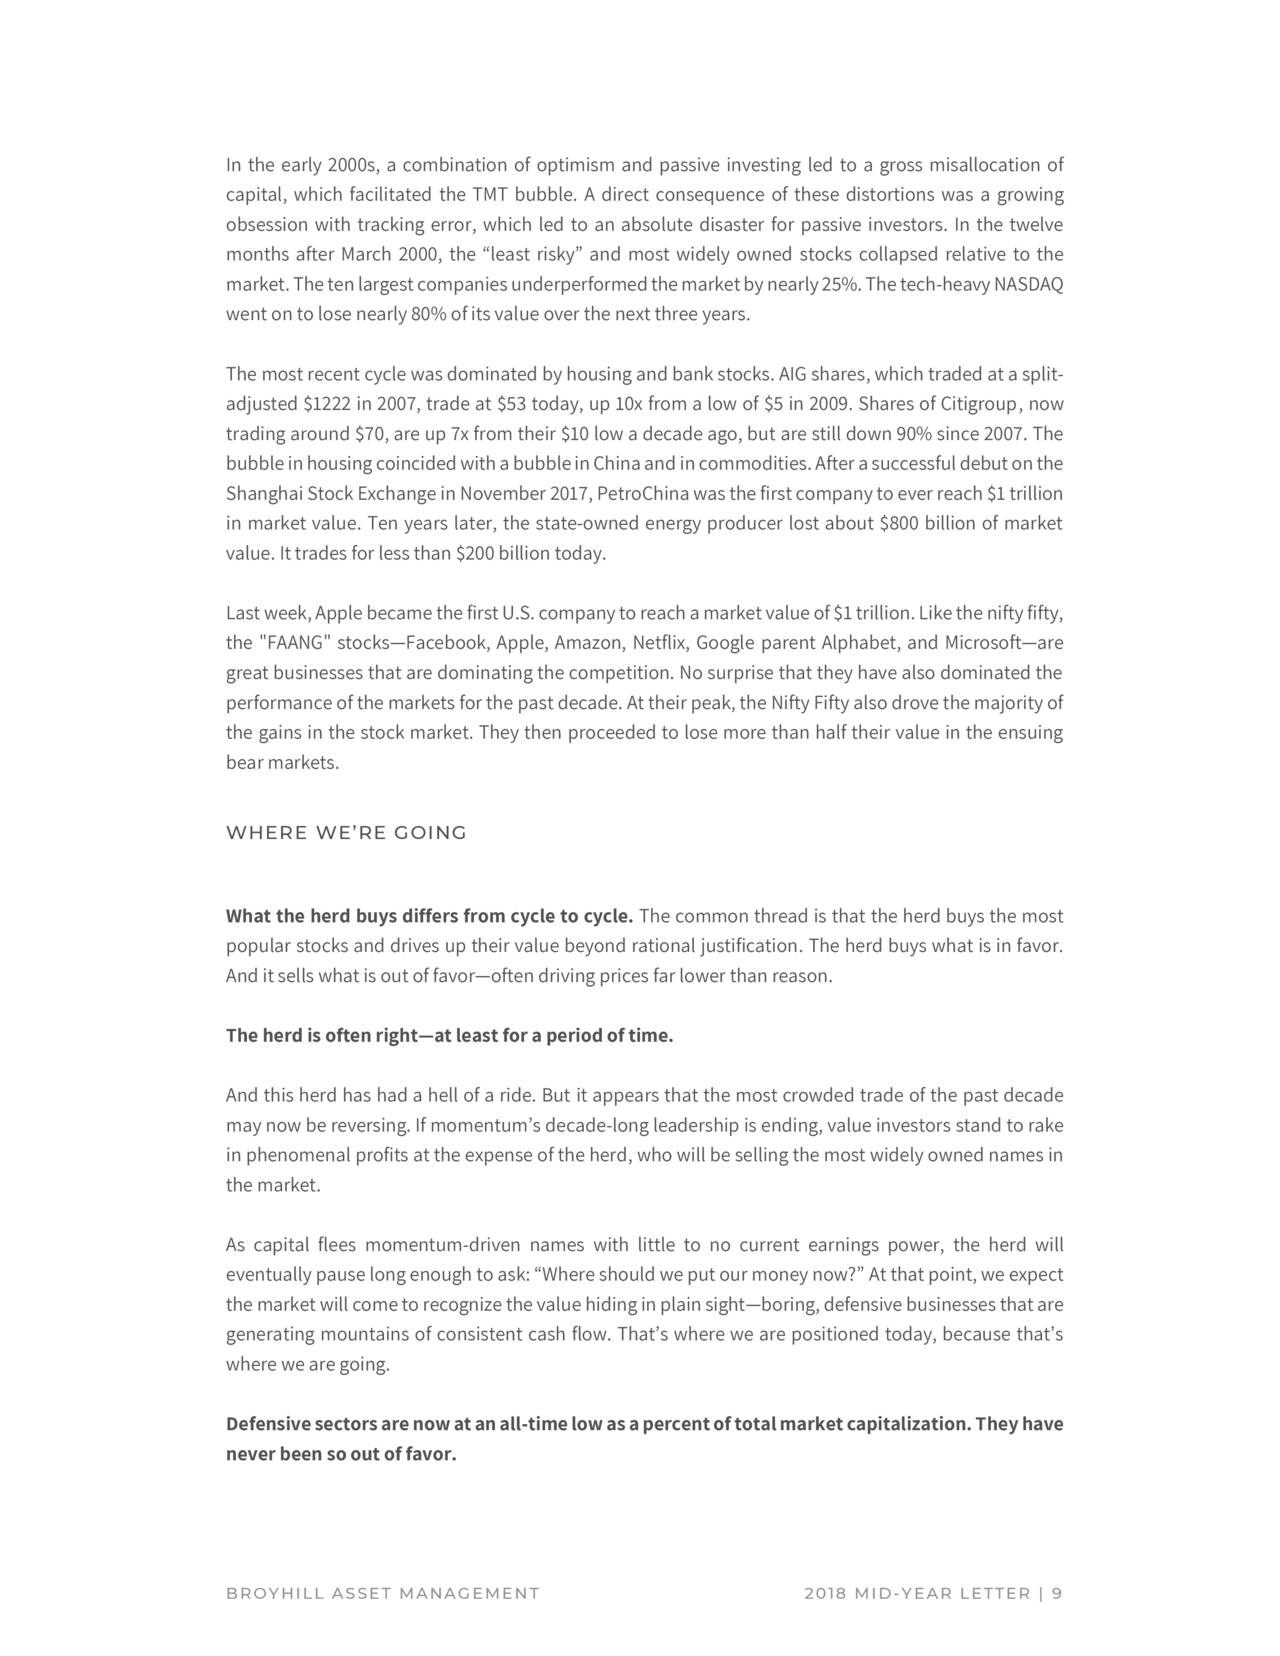 broyhill asset management mid-year letter 2018